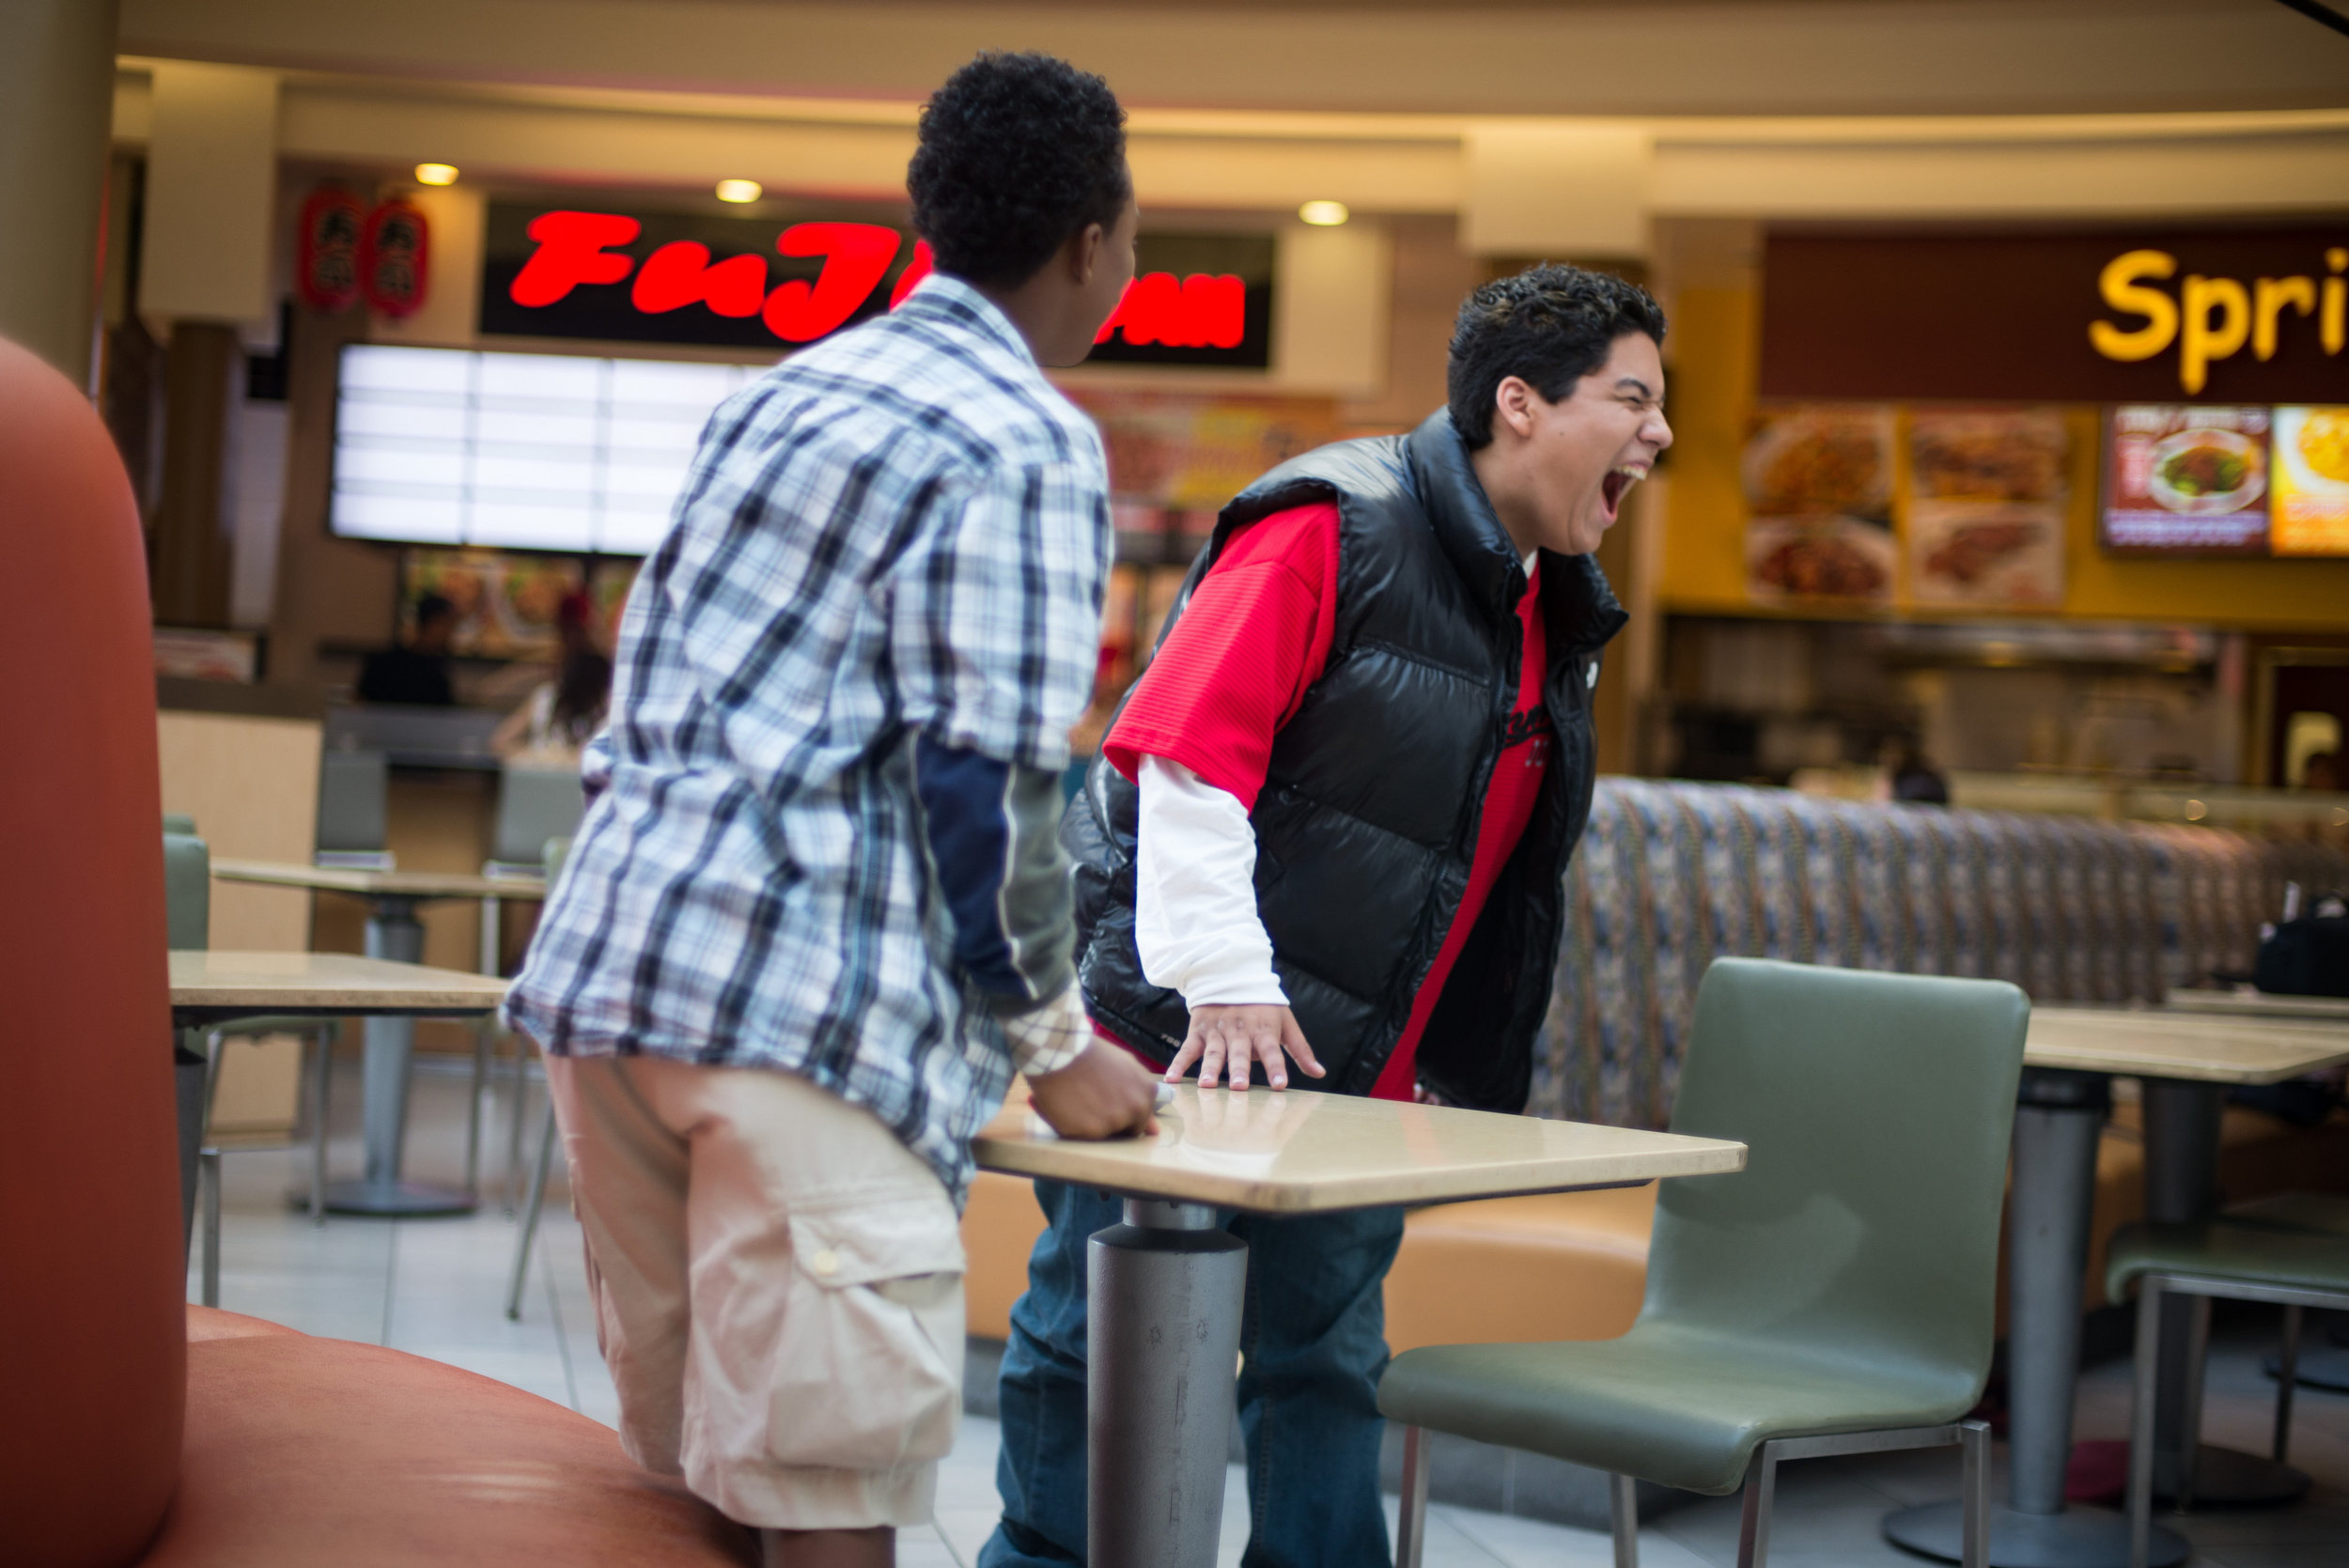 Stevey's explosive scene at the food court even had innocent shoppers frightened.